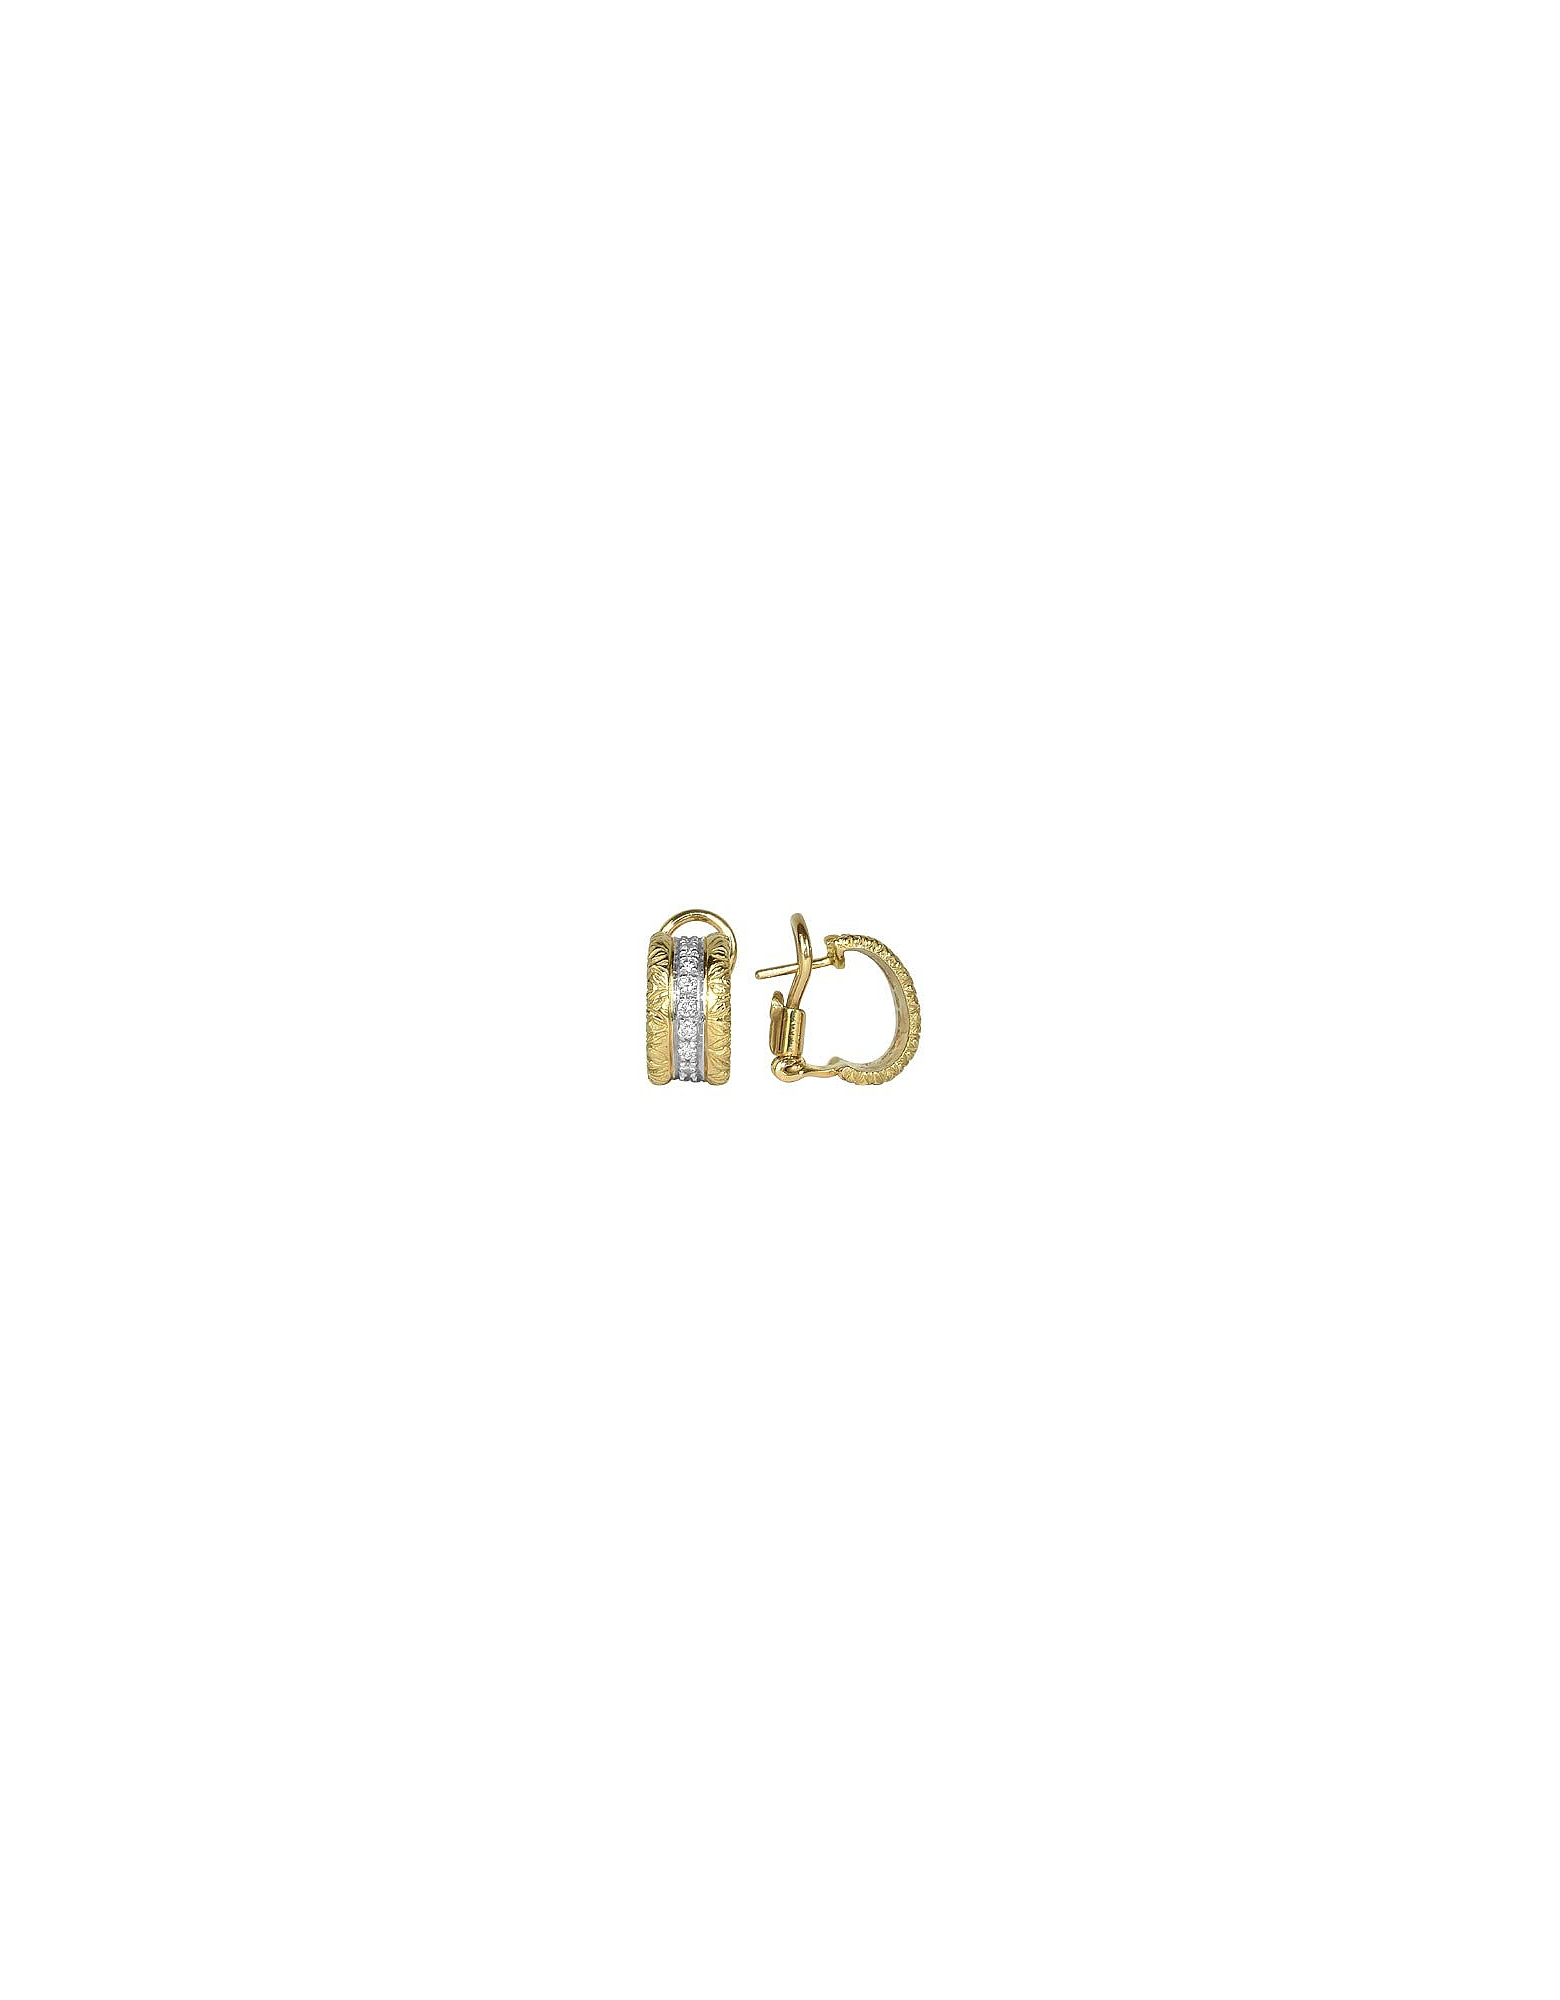 Torrini Designer Earrings, Mini-Denise - 18K Yellow Gold Diamond Earrings